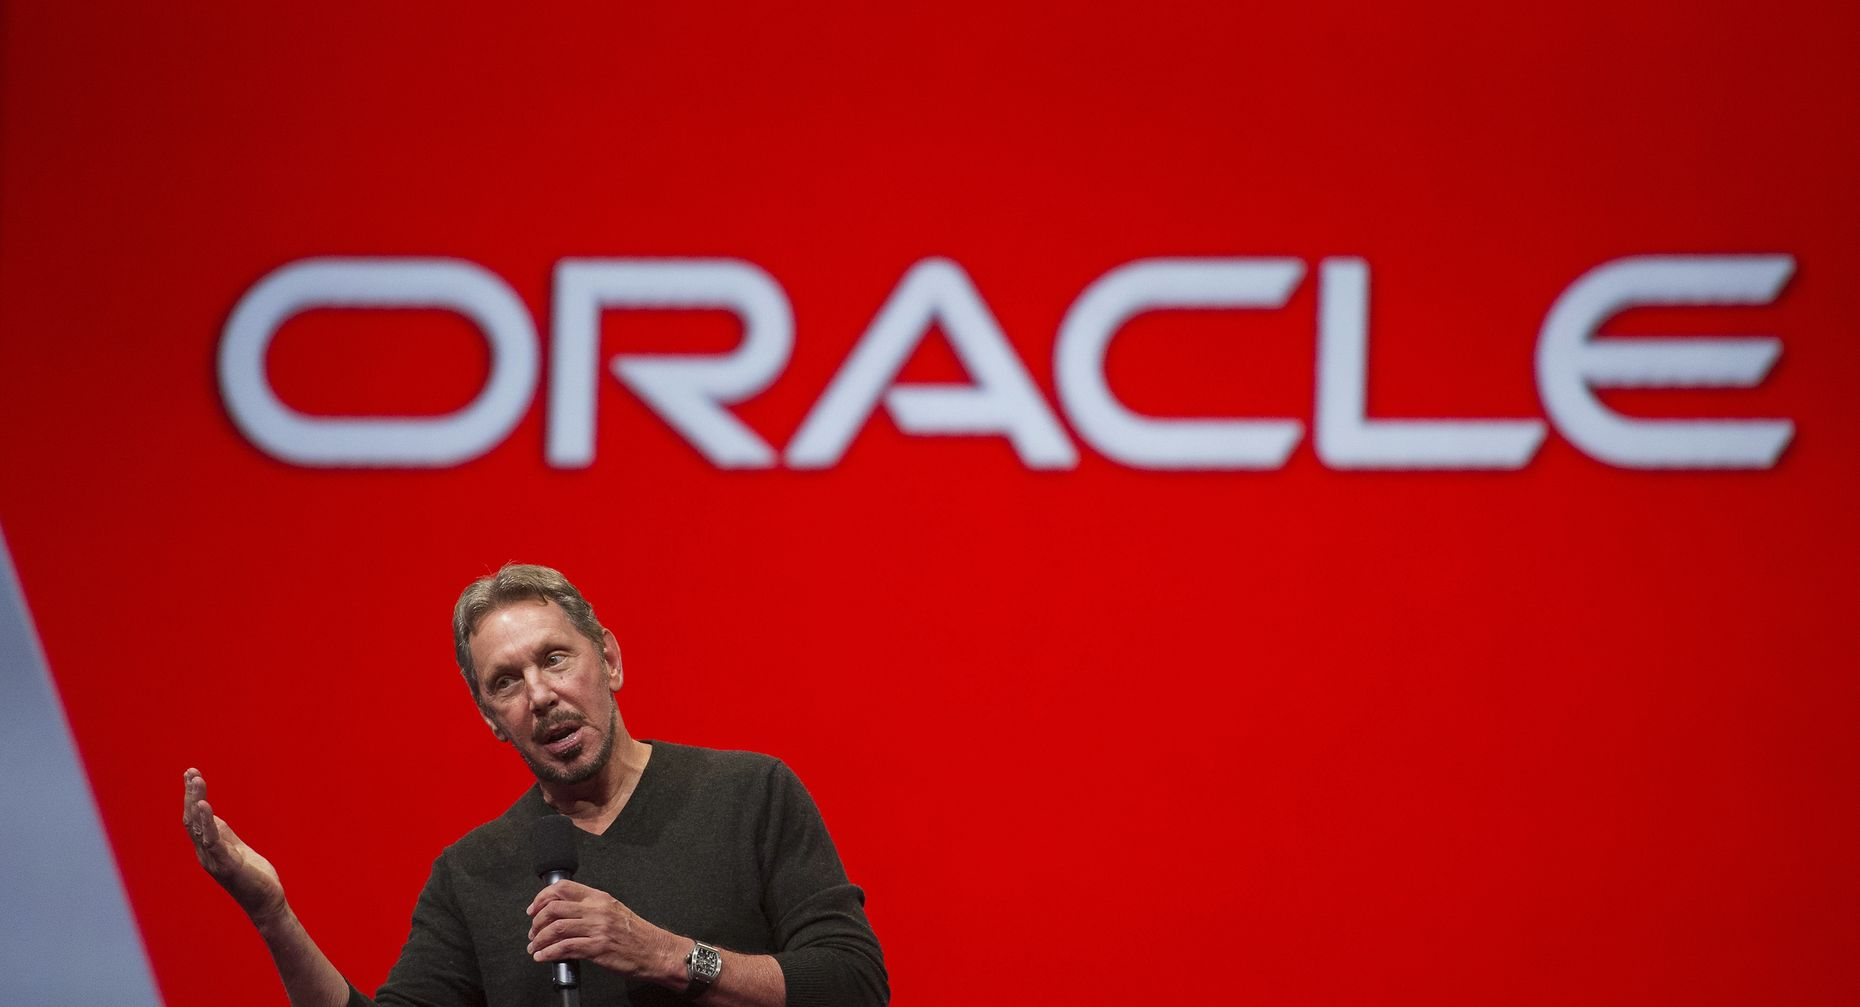 Oracle founder and chief technology officer Larry Ellison. Photo by Bloomberg.